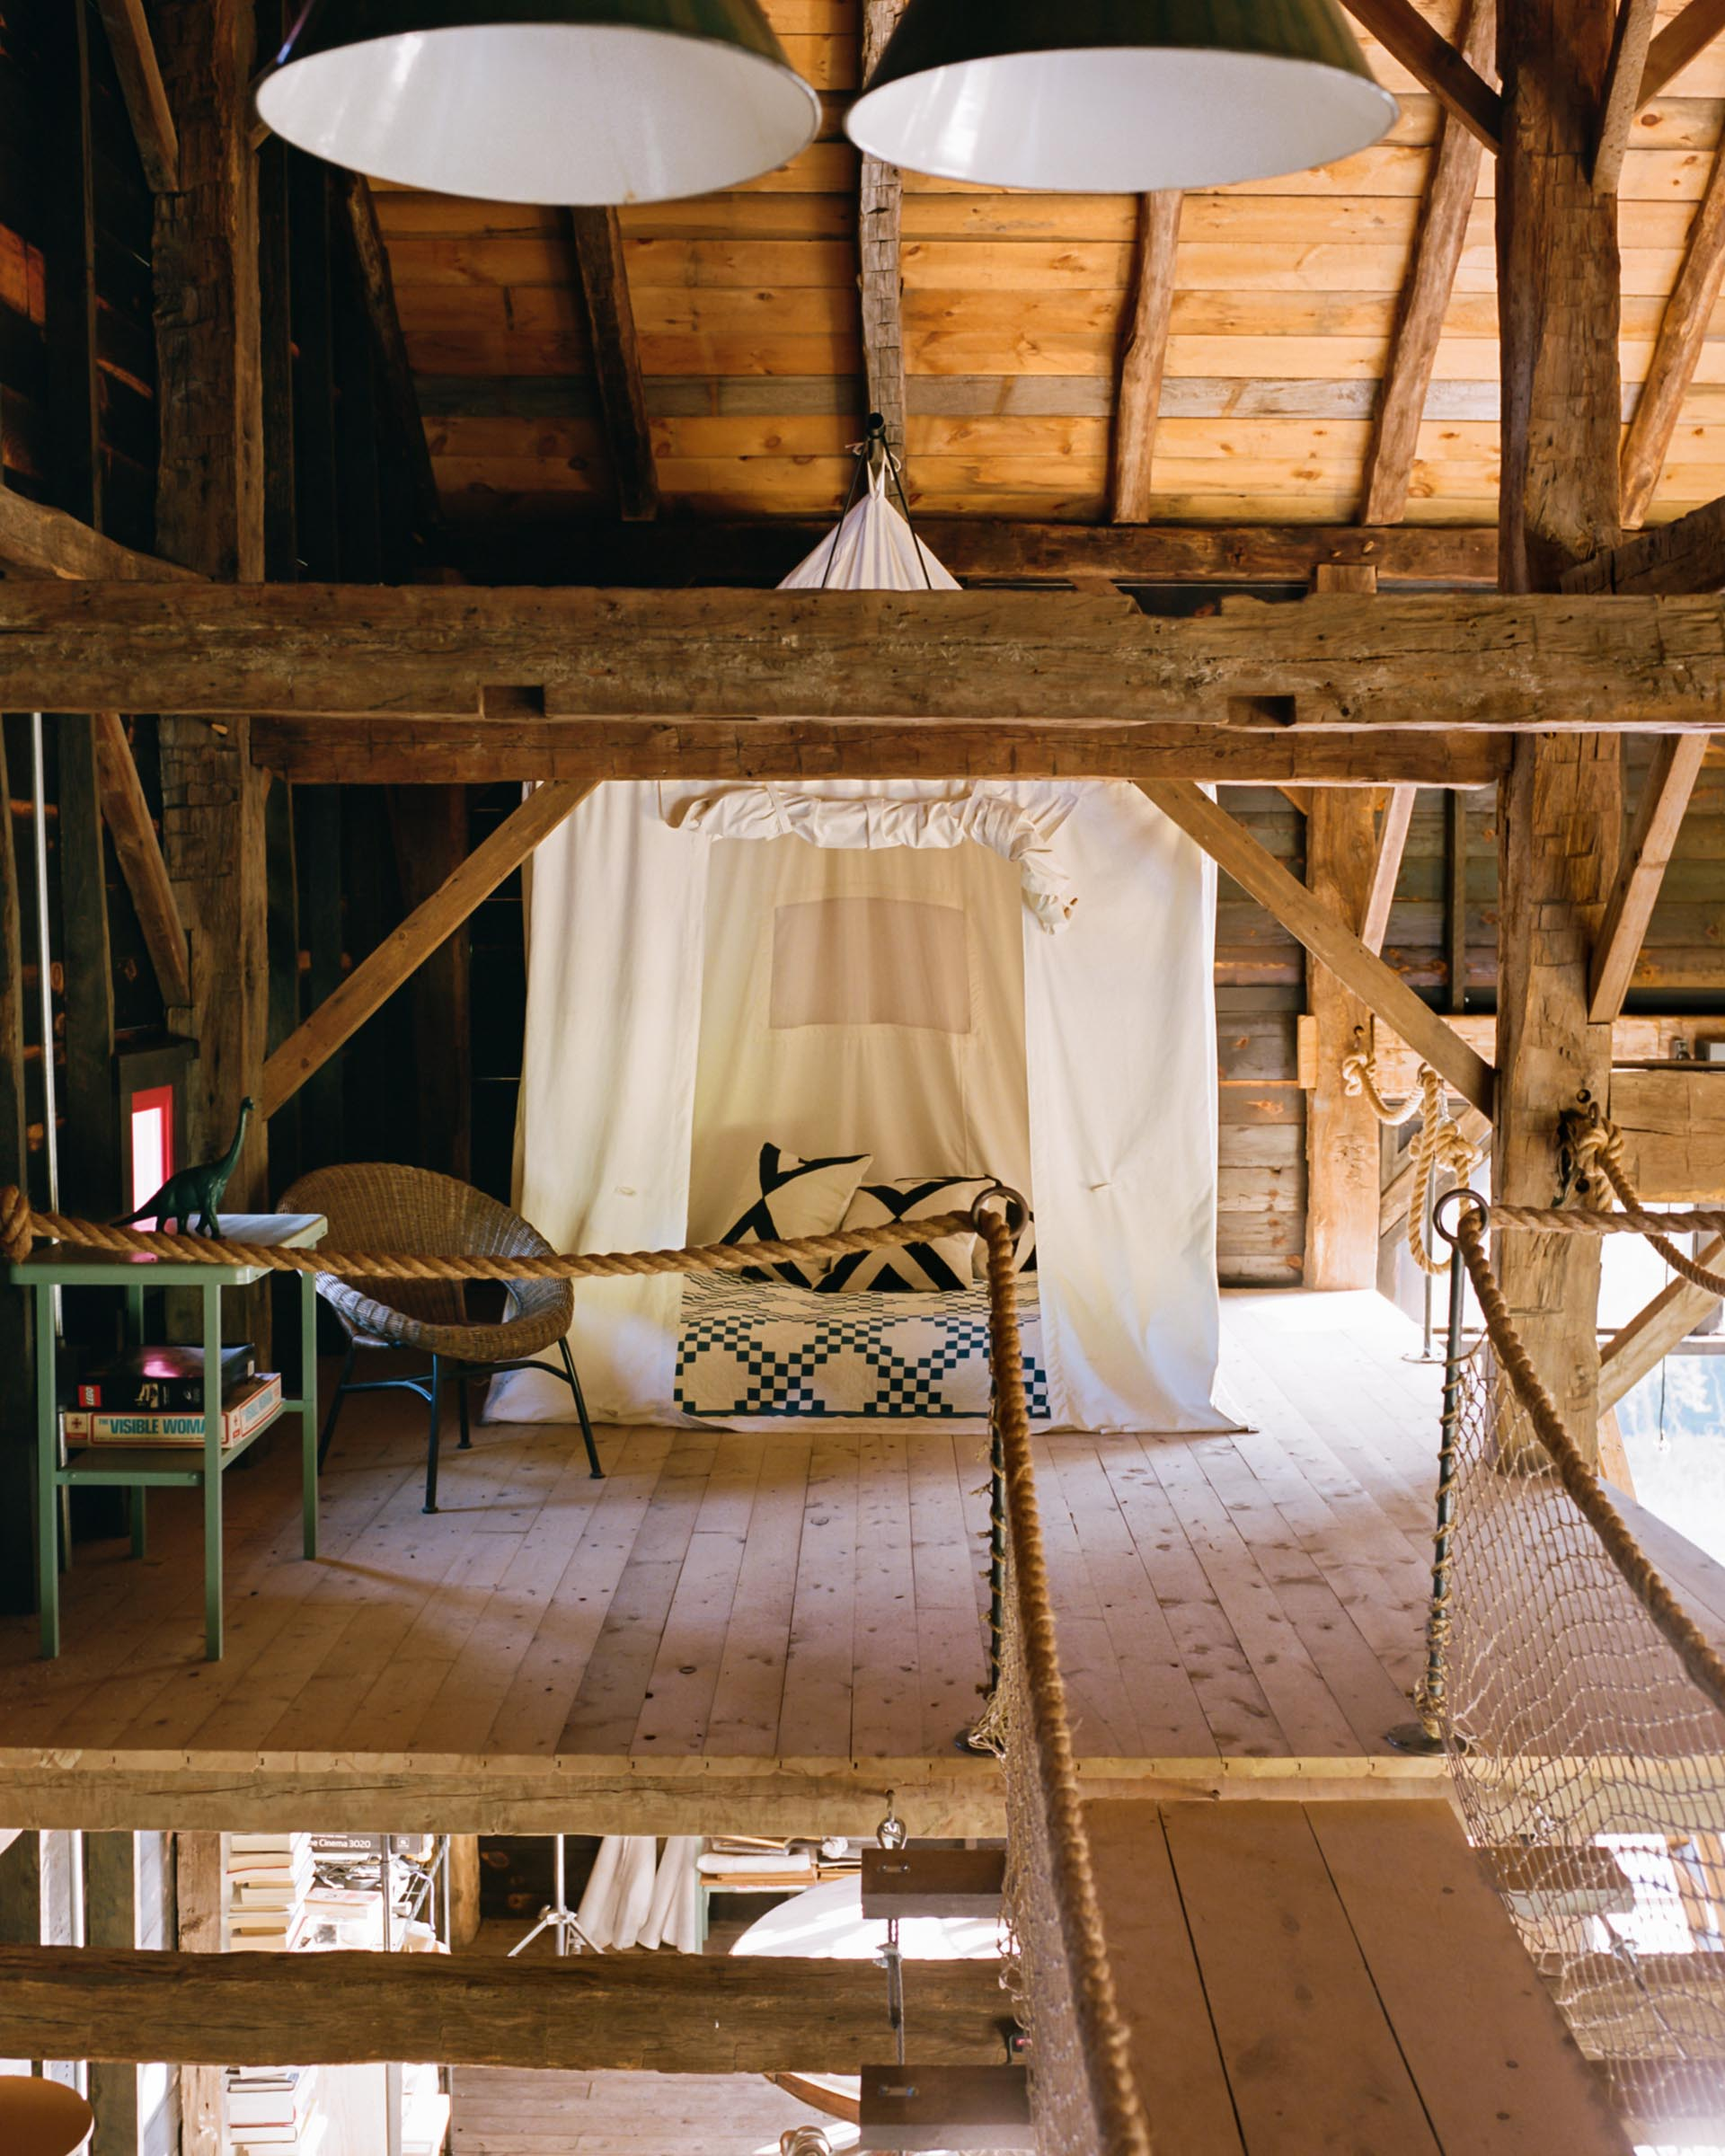 A barn interior with a bed surrounded by a fabric tent.